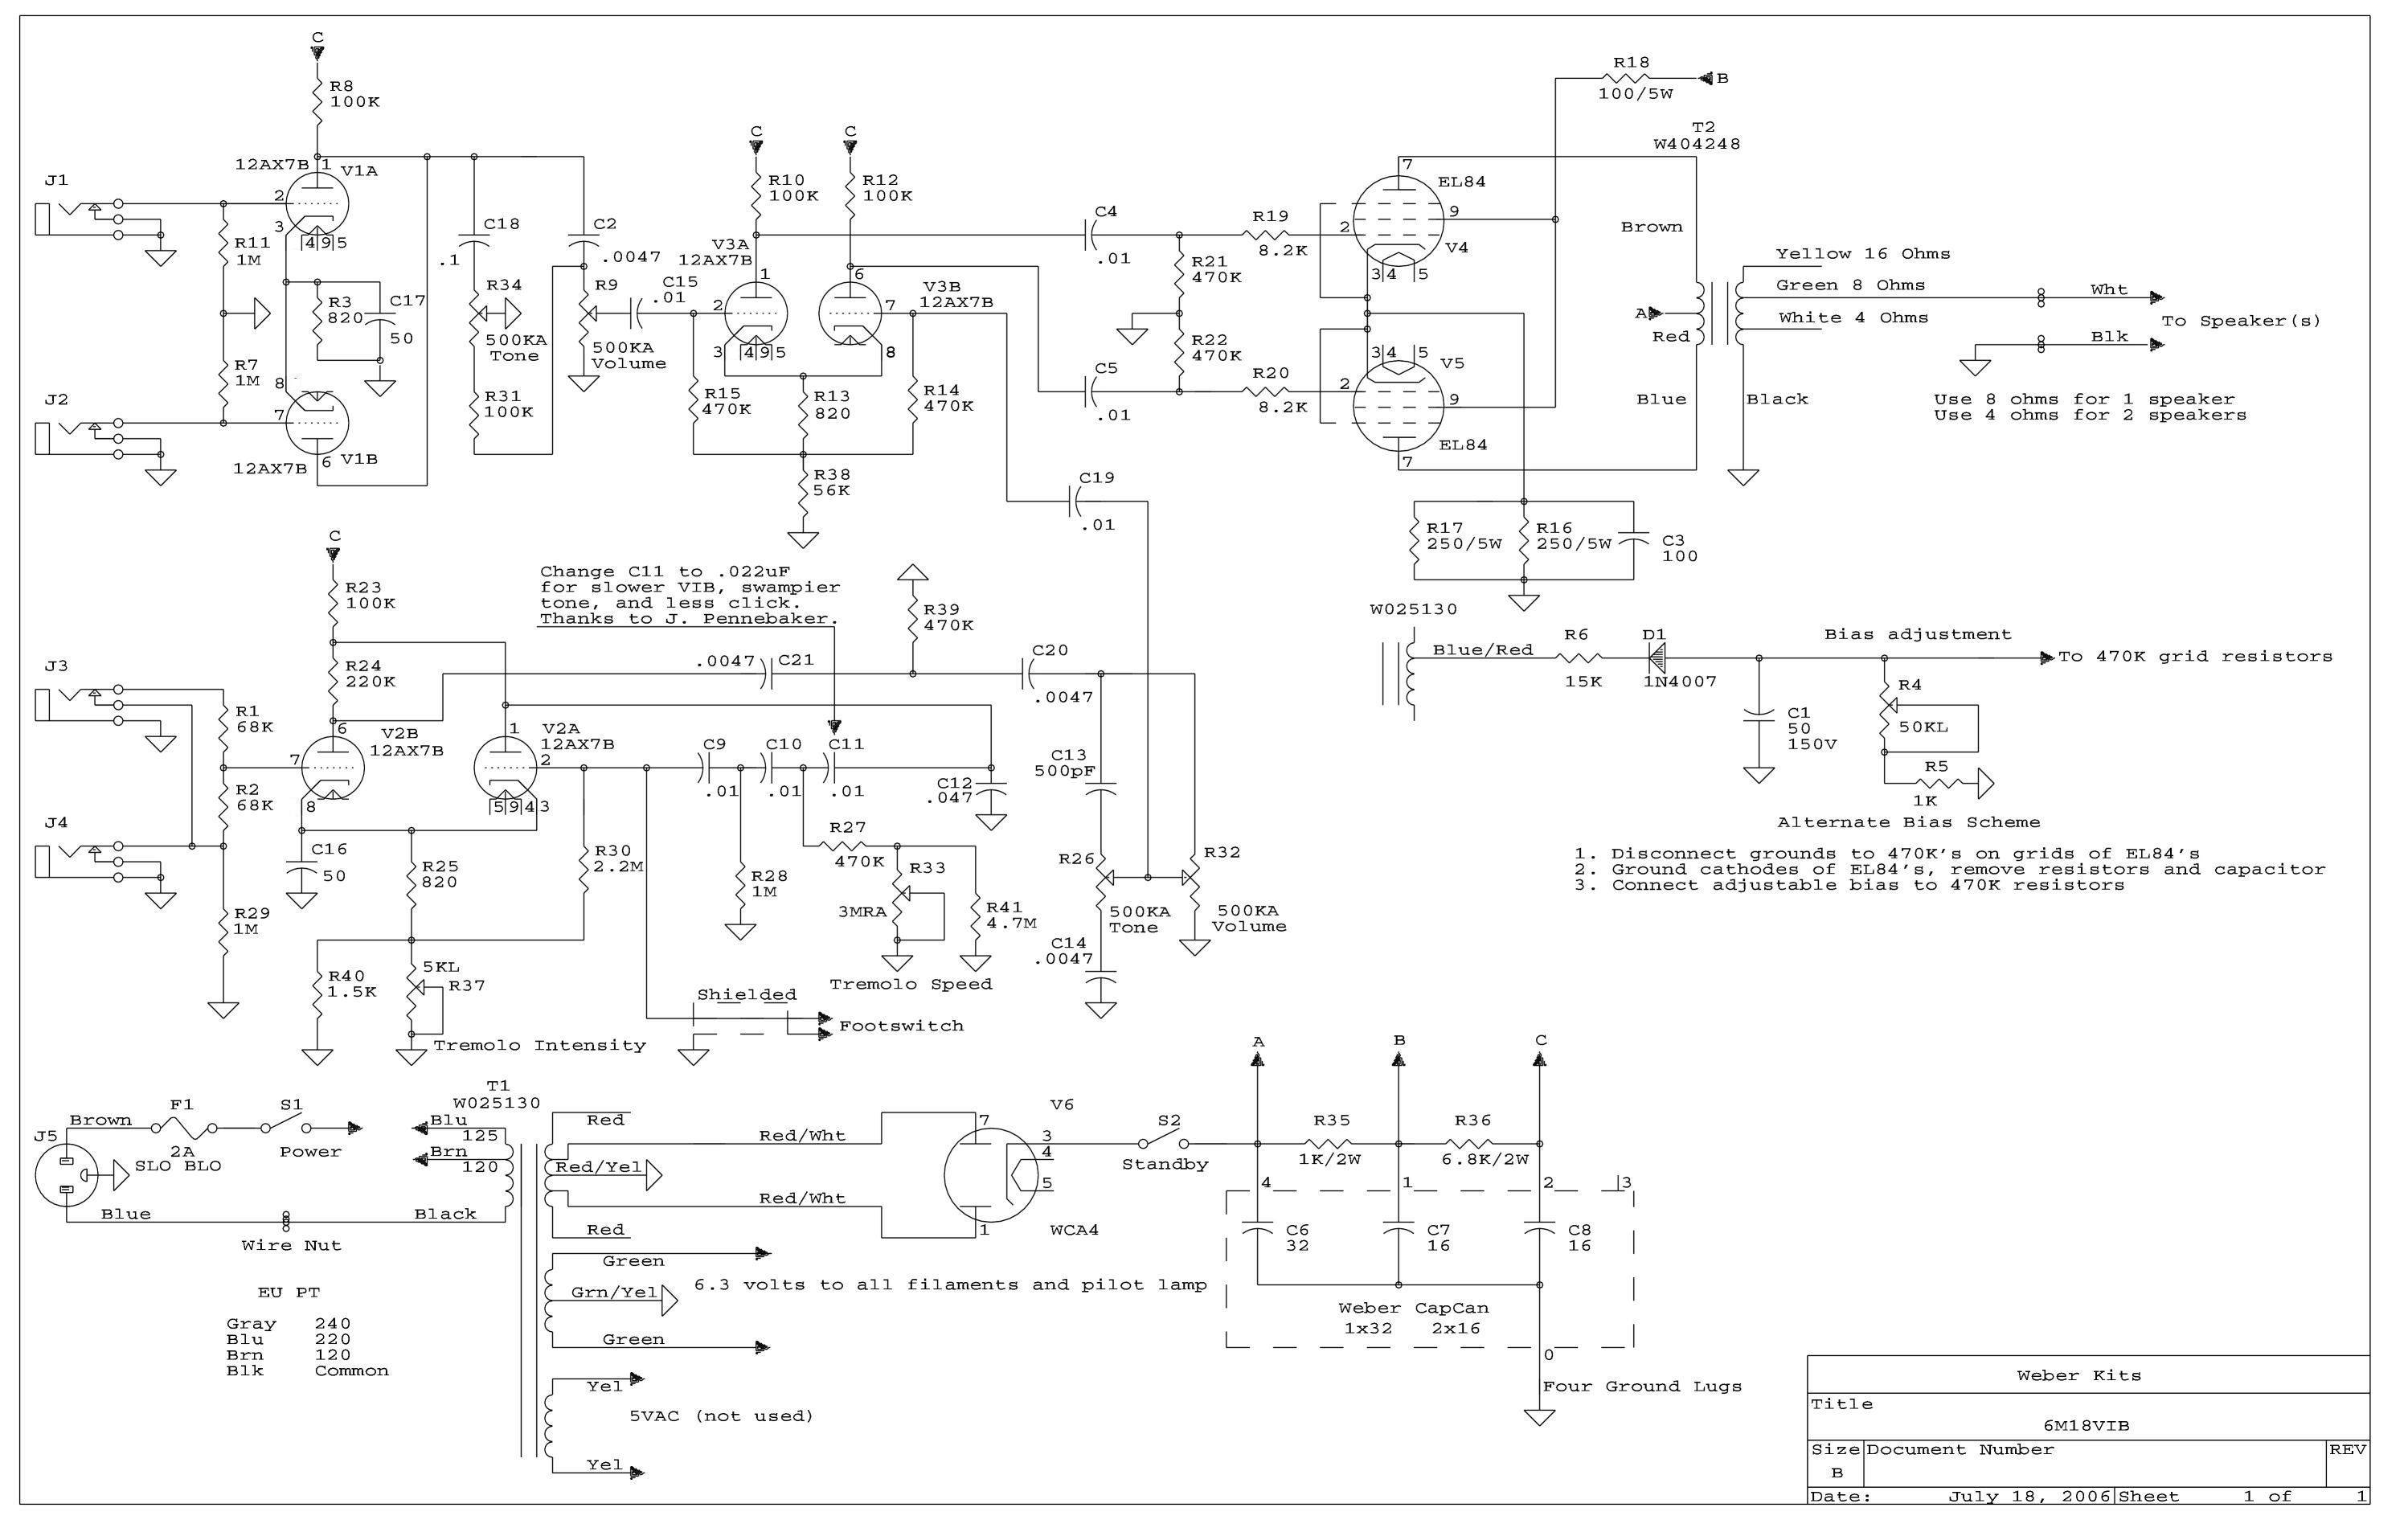 6m18vib_schem 6m18 amp kit weber ksg 470 wiring diagrams at crackthecode.co